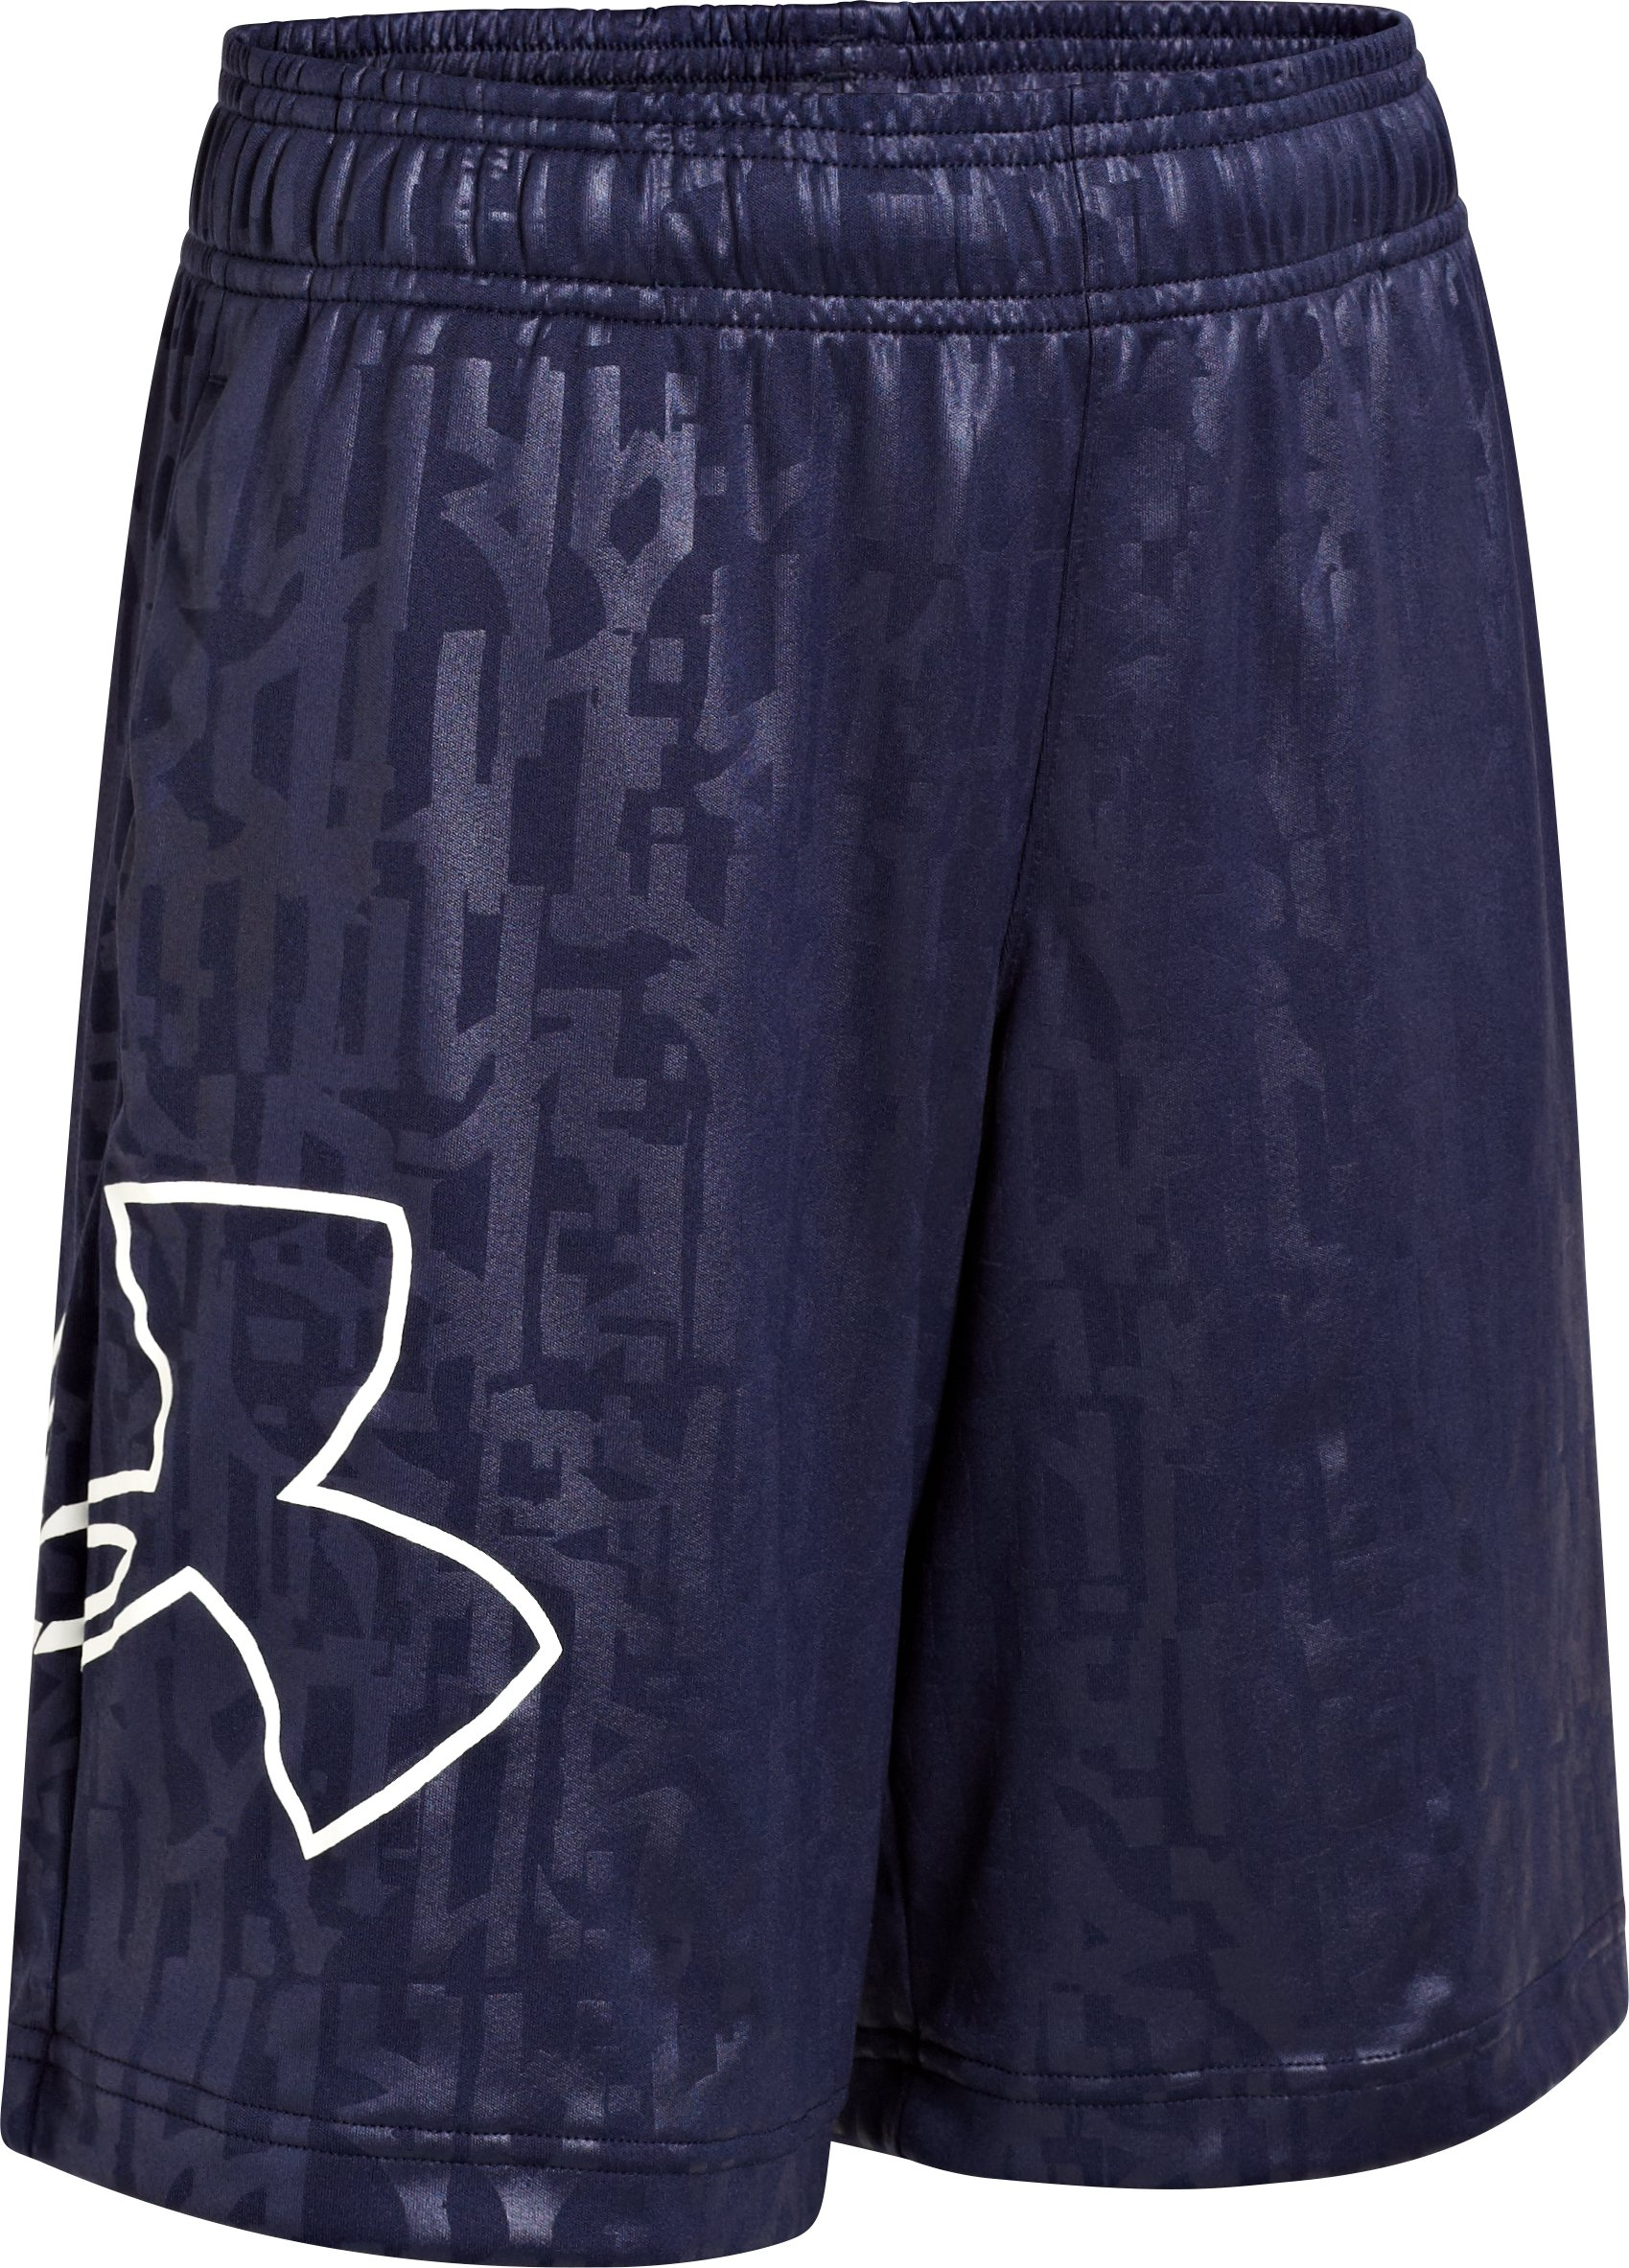 Boys' UA Allover Shorts, Midnight Navy